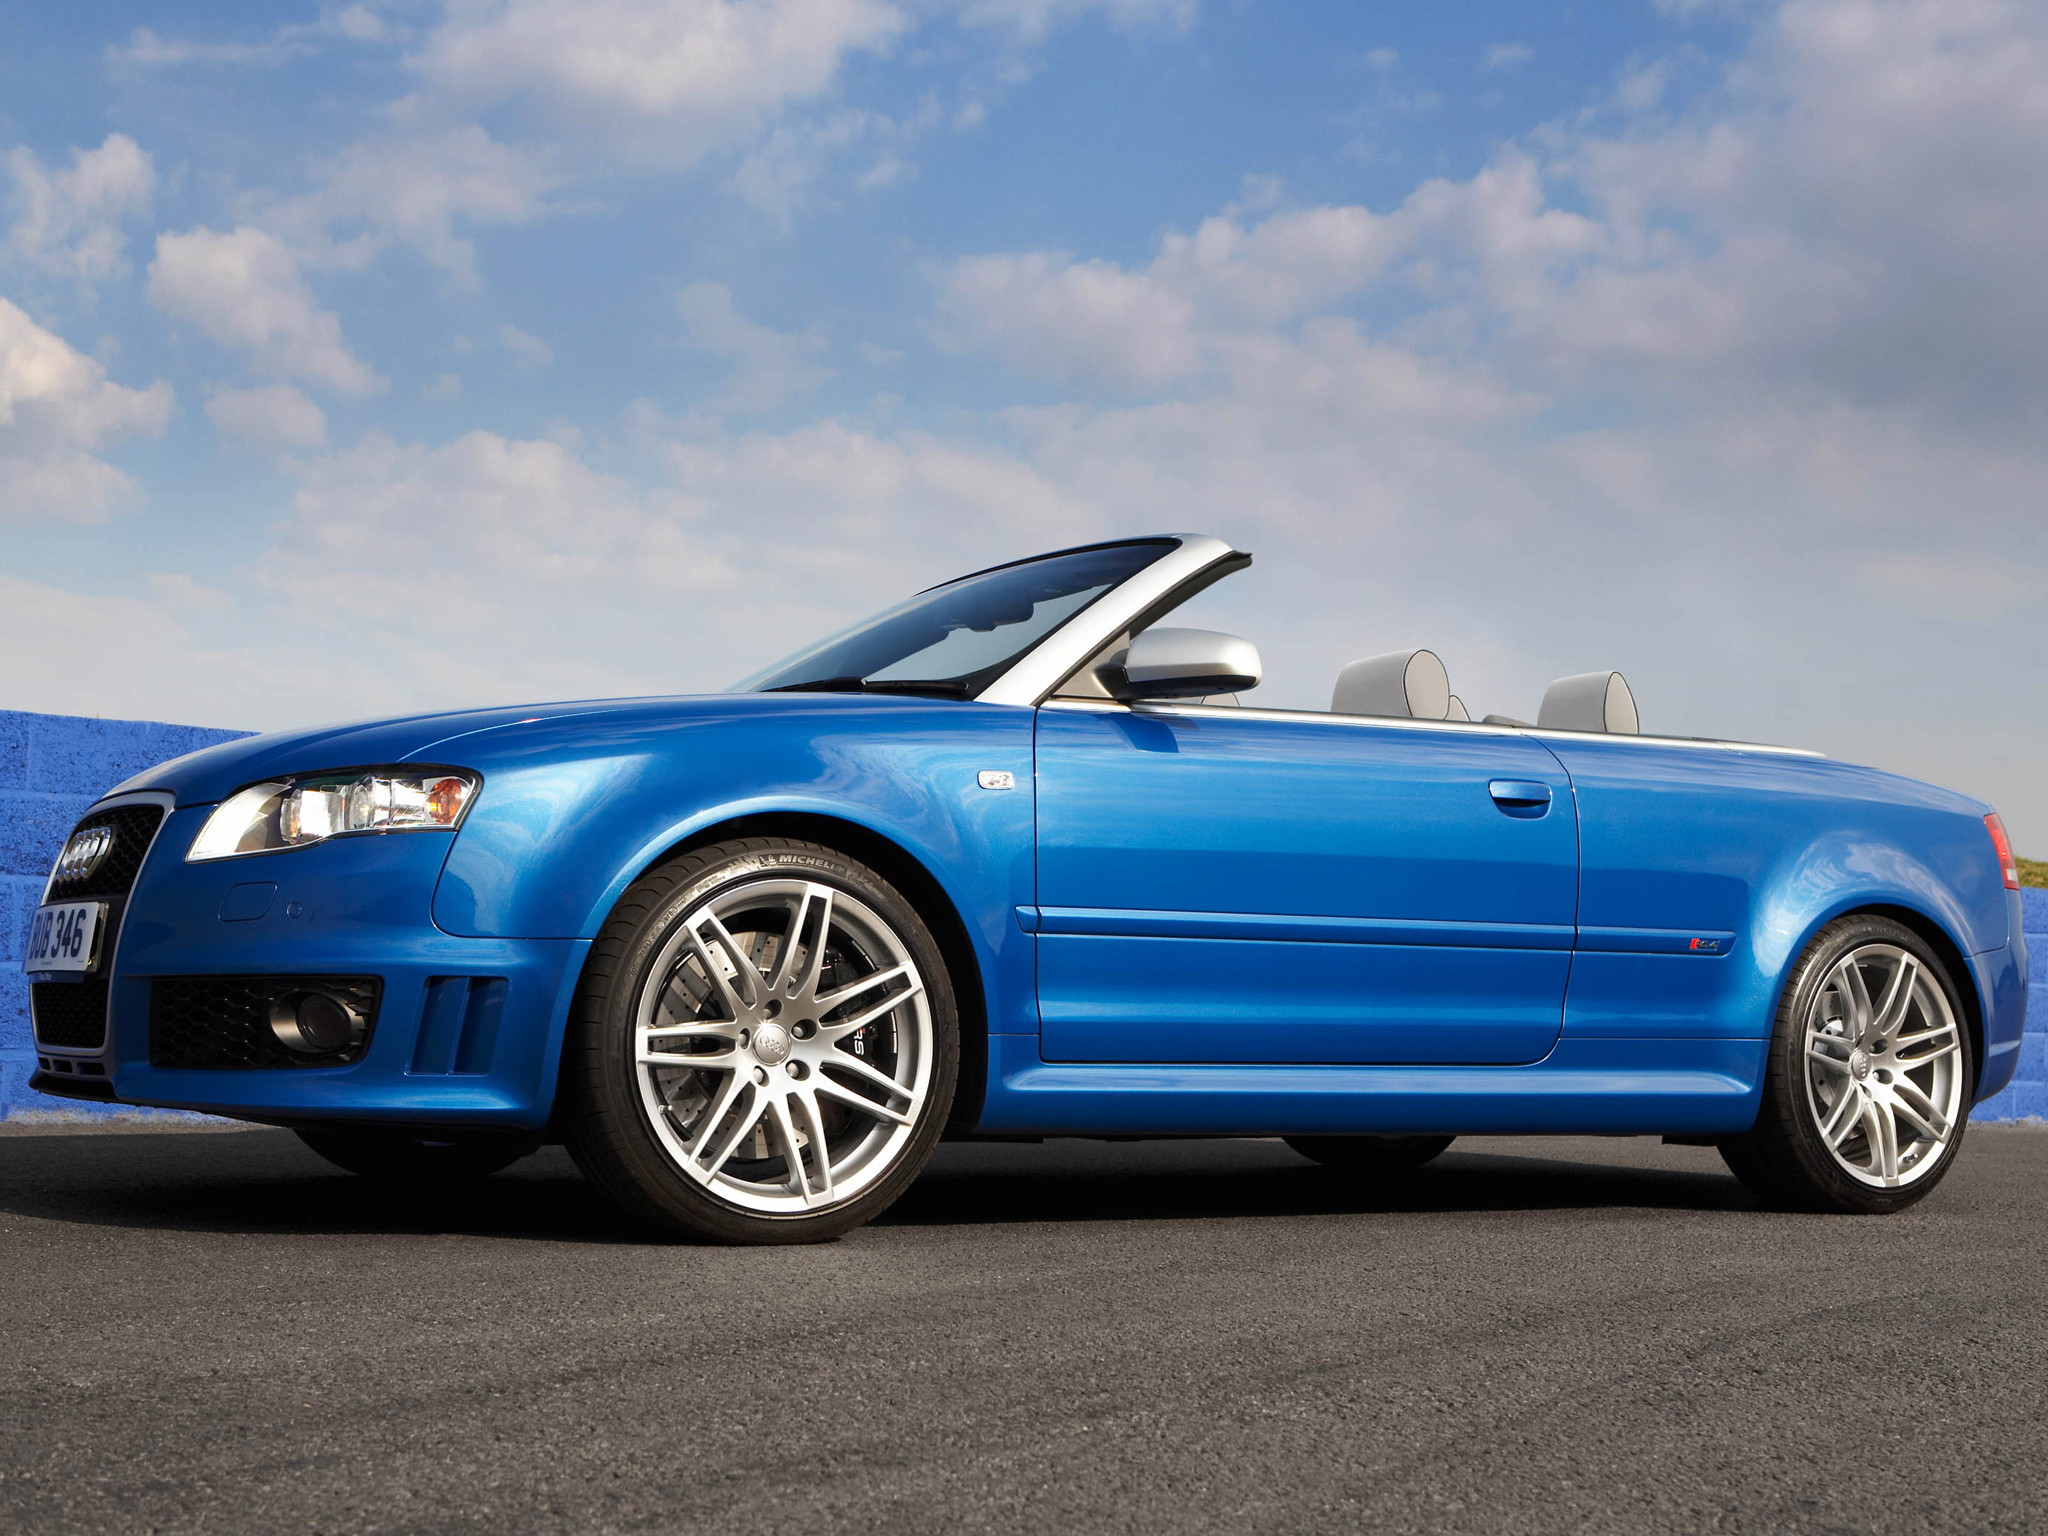 audi rs4 cabriolet photos photogallery with 16 pics. Black Bedroom Furniture Sets. Home Design Ideas